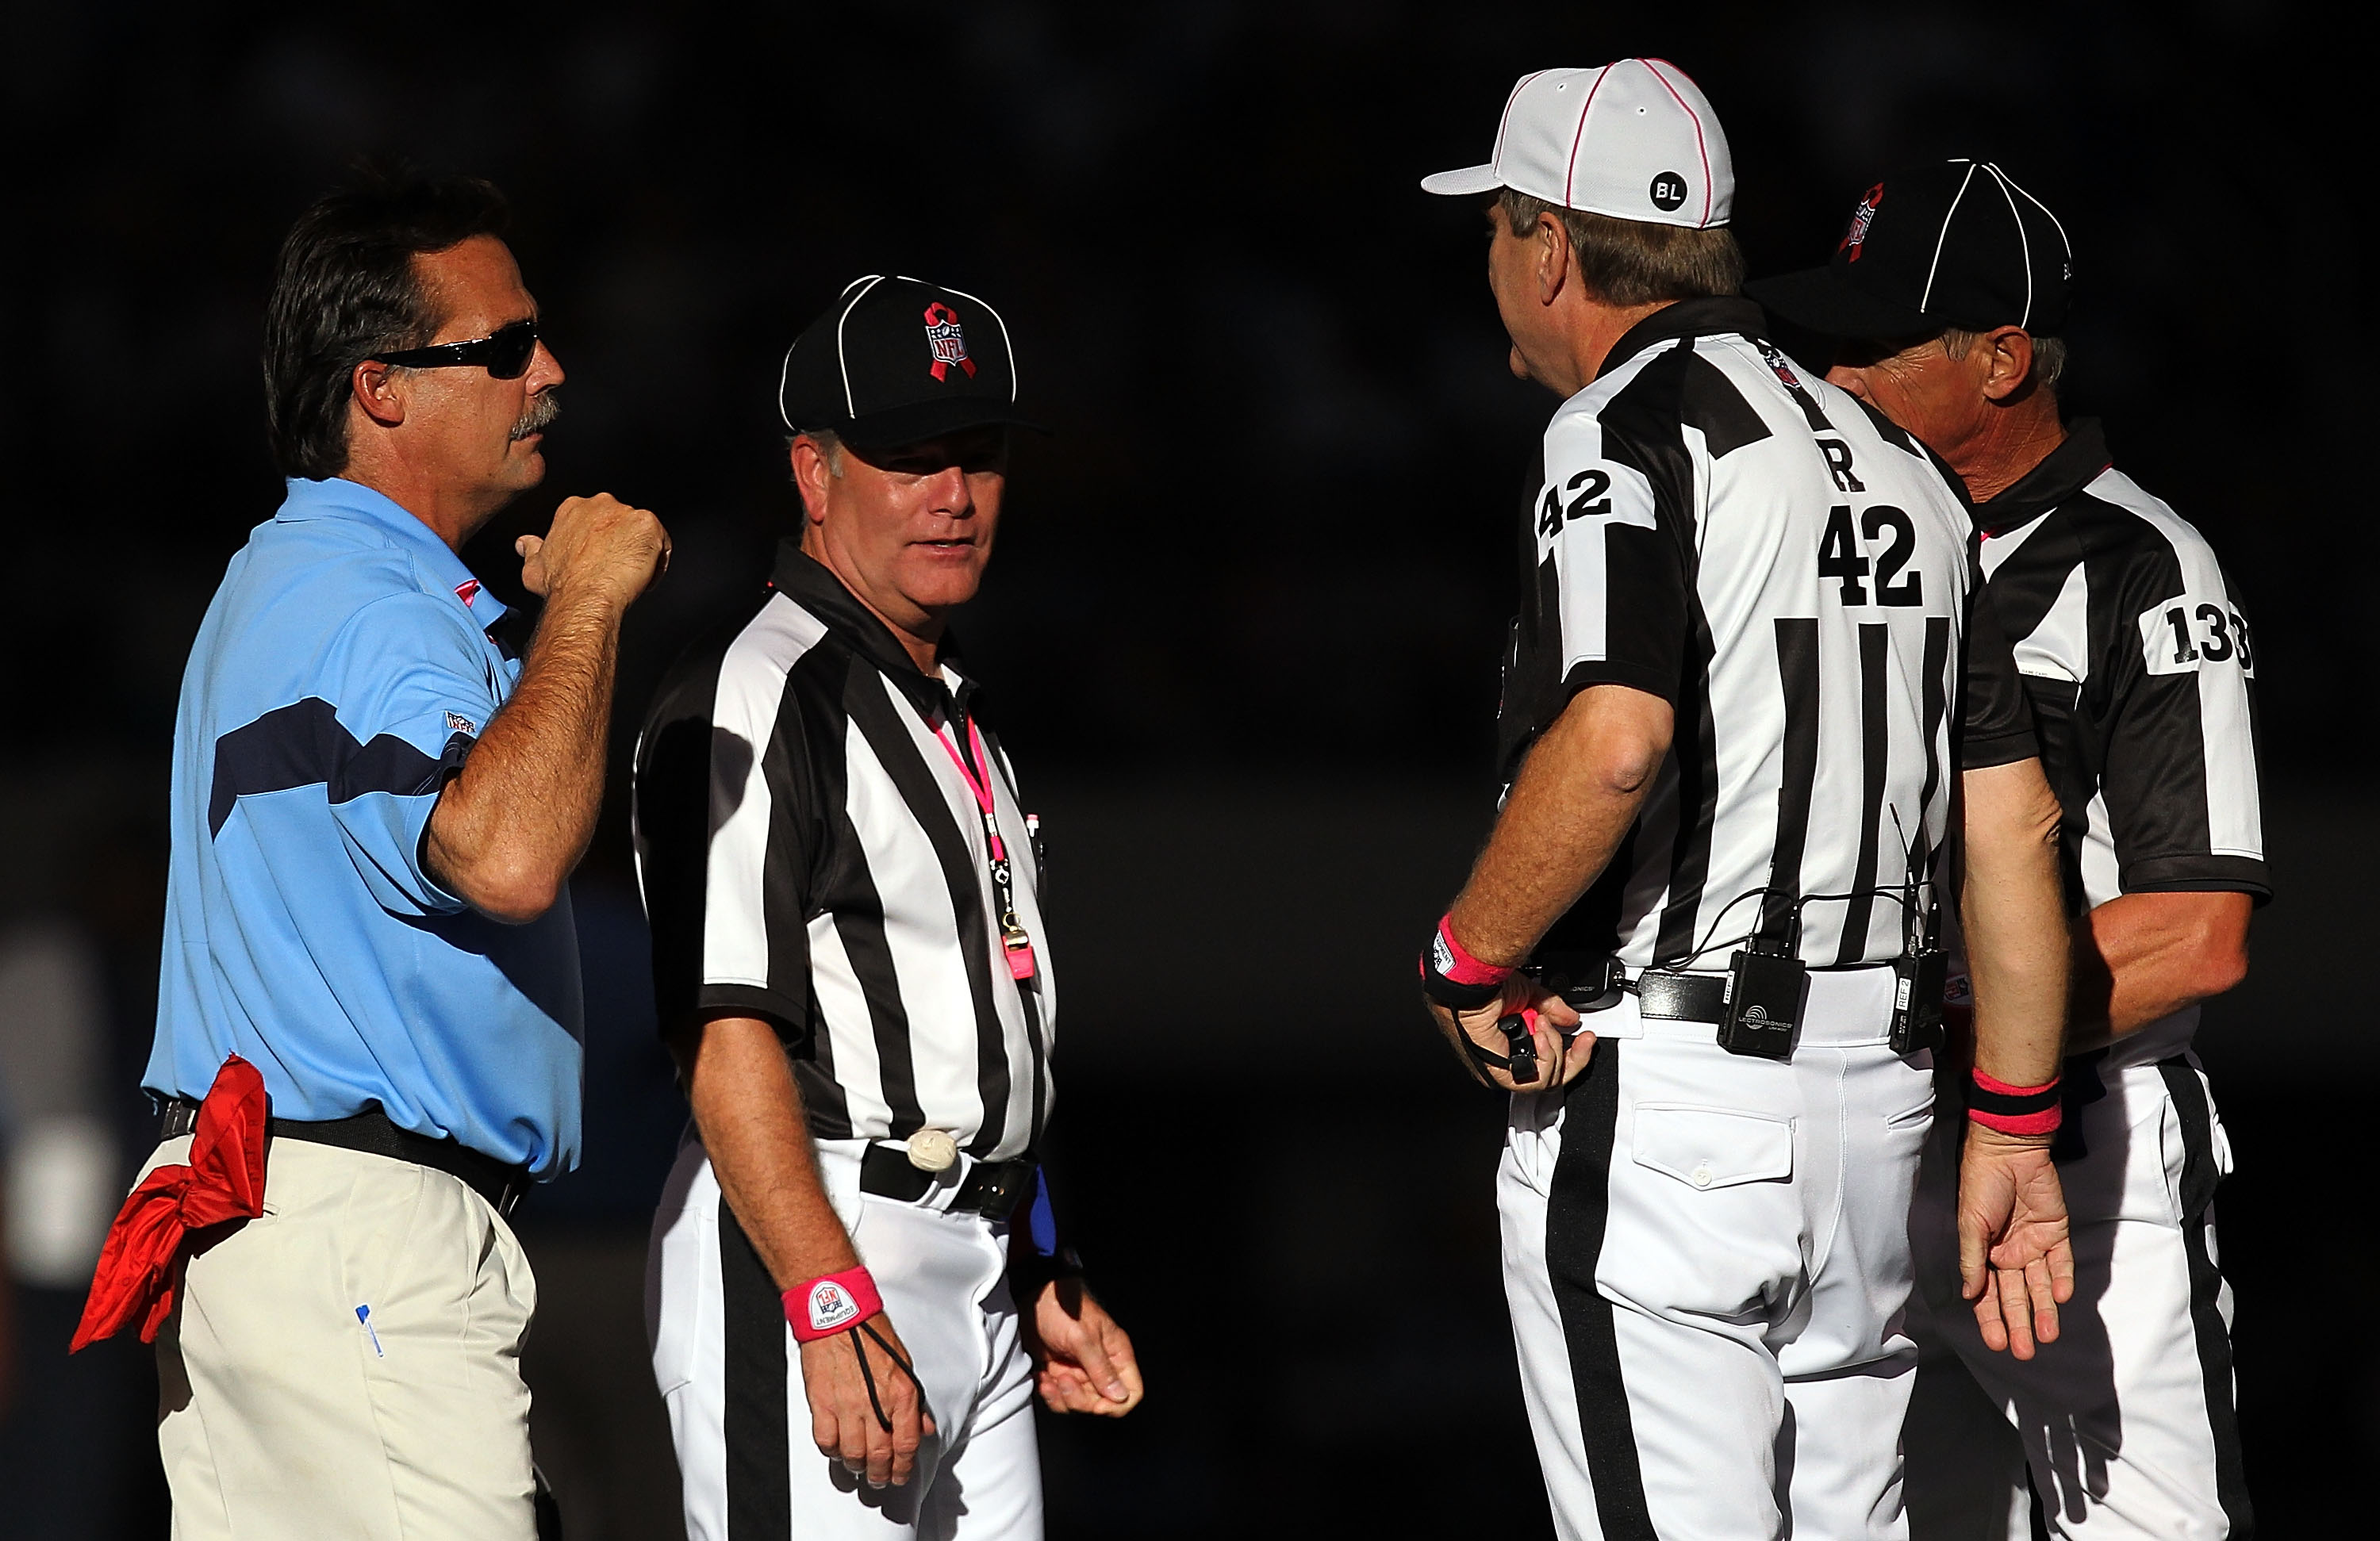 ARLINGTON, TX - OCTOBER 10:  Head coach Jeff Fisher of the Tennessee Titans talks with officials at Cowboys Stadium on October 10, 2010 in Arlington, Texas.  (Photo by Ronald Martinez/Getty Images)